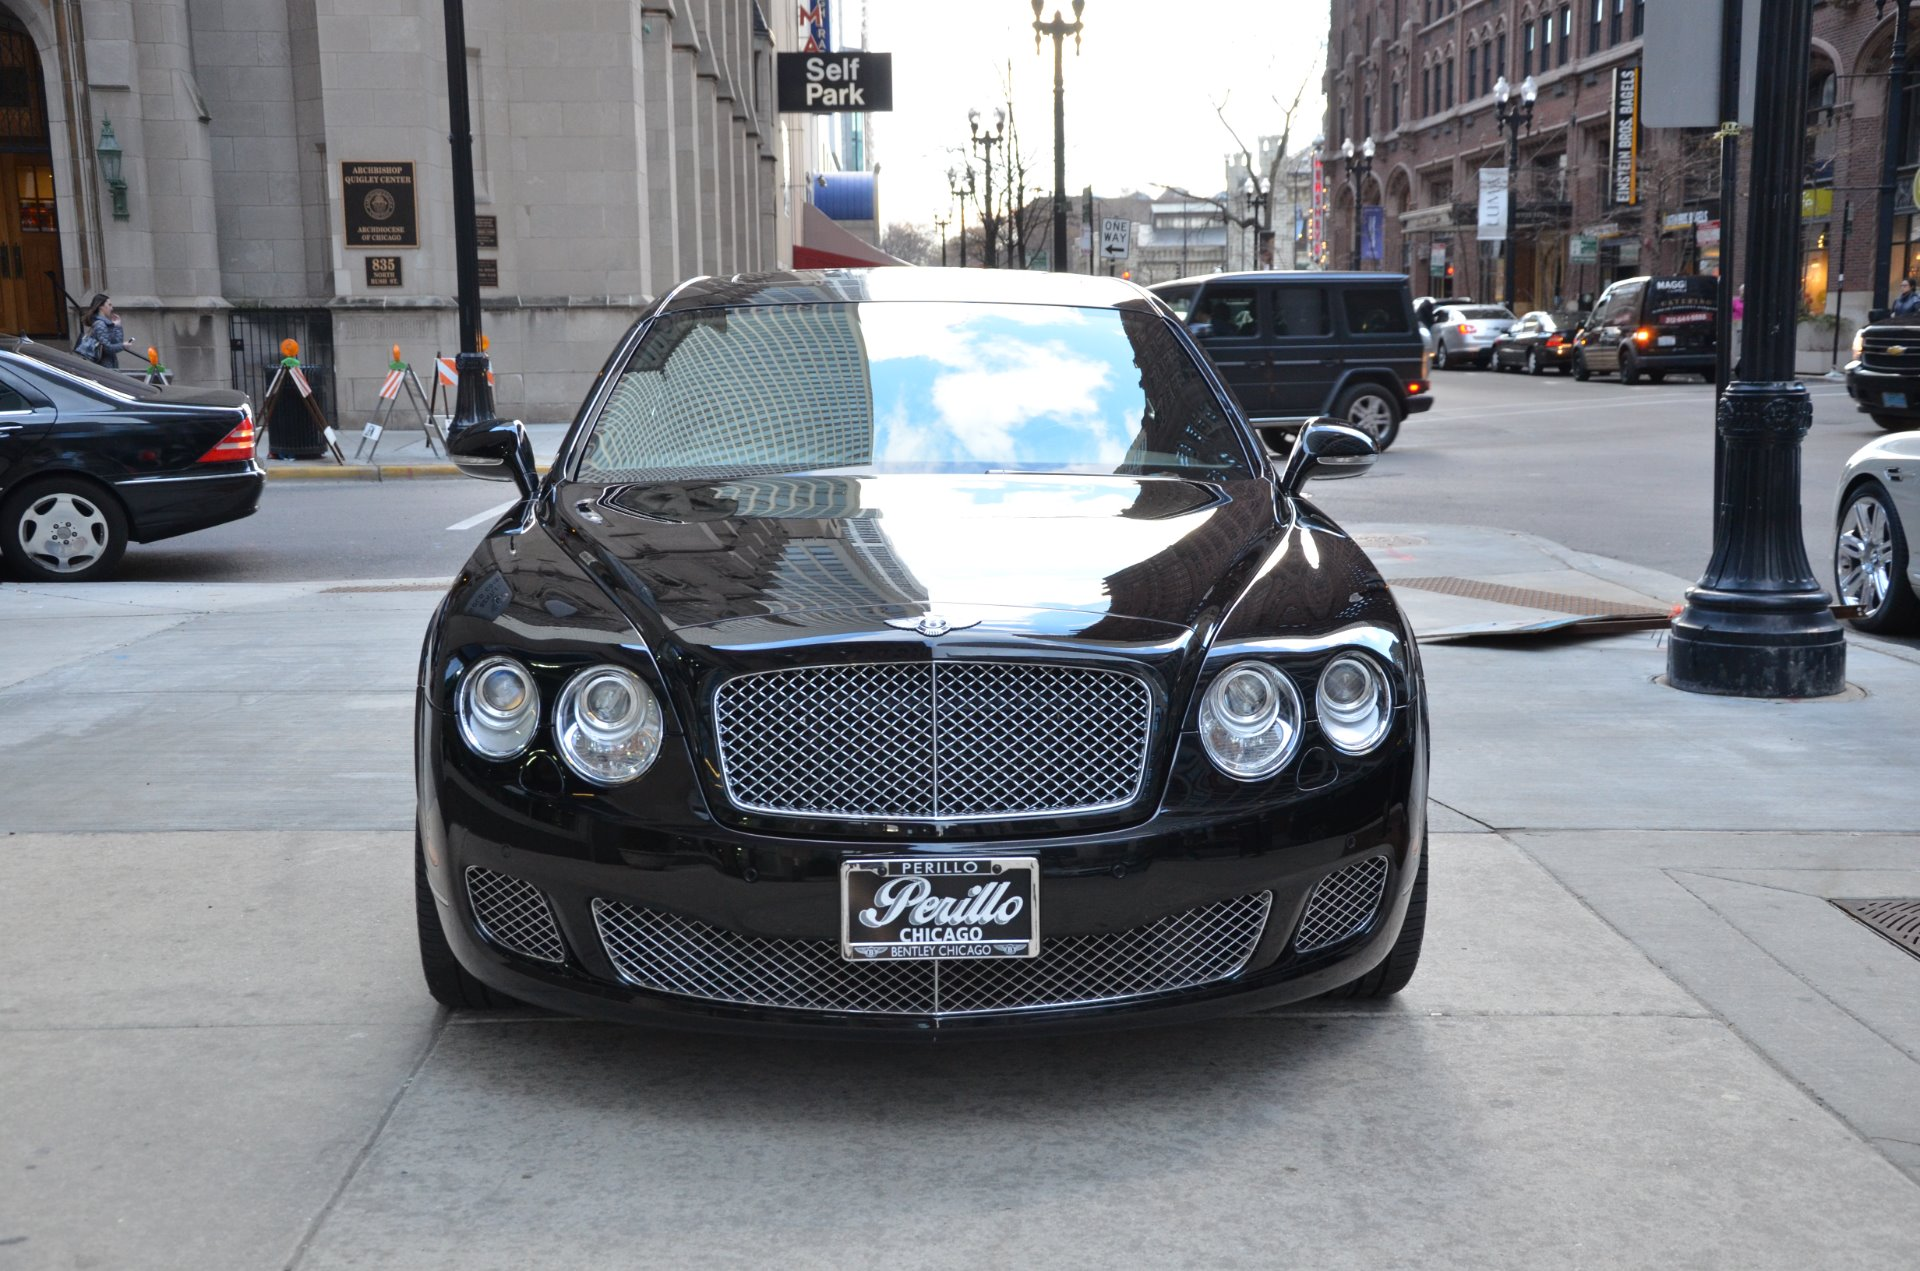 2012 bentley continental flying spur stock gc1849a for sale near chicago il il bentley dealer. Black Bedroom Furniture Sets. Home Design Ideas